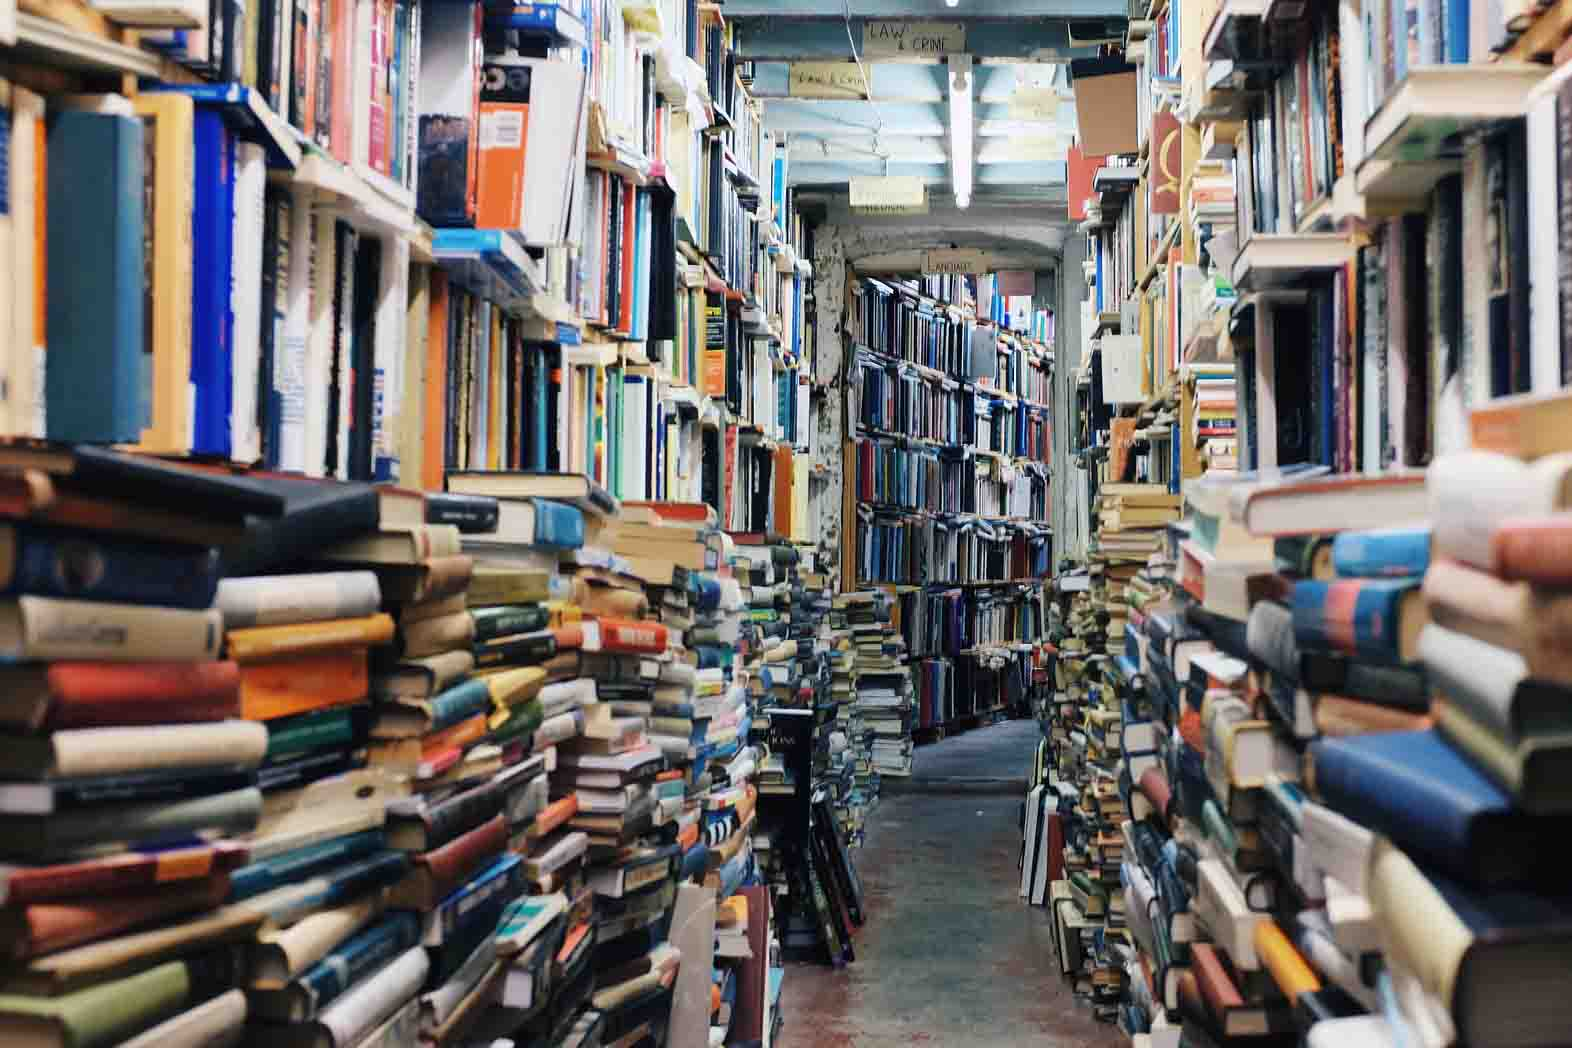 Books packed into library shelves